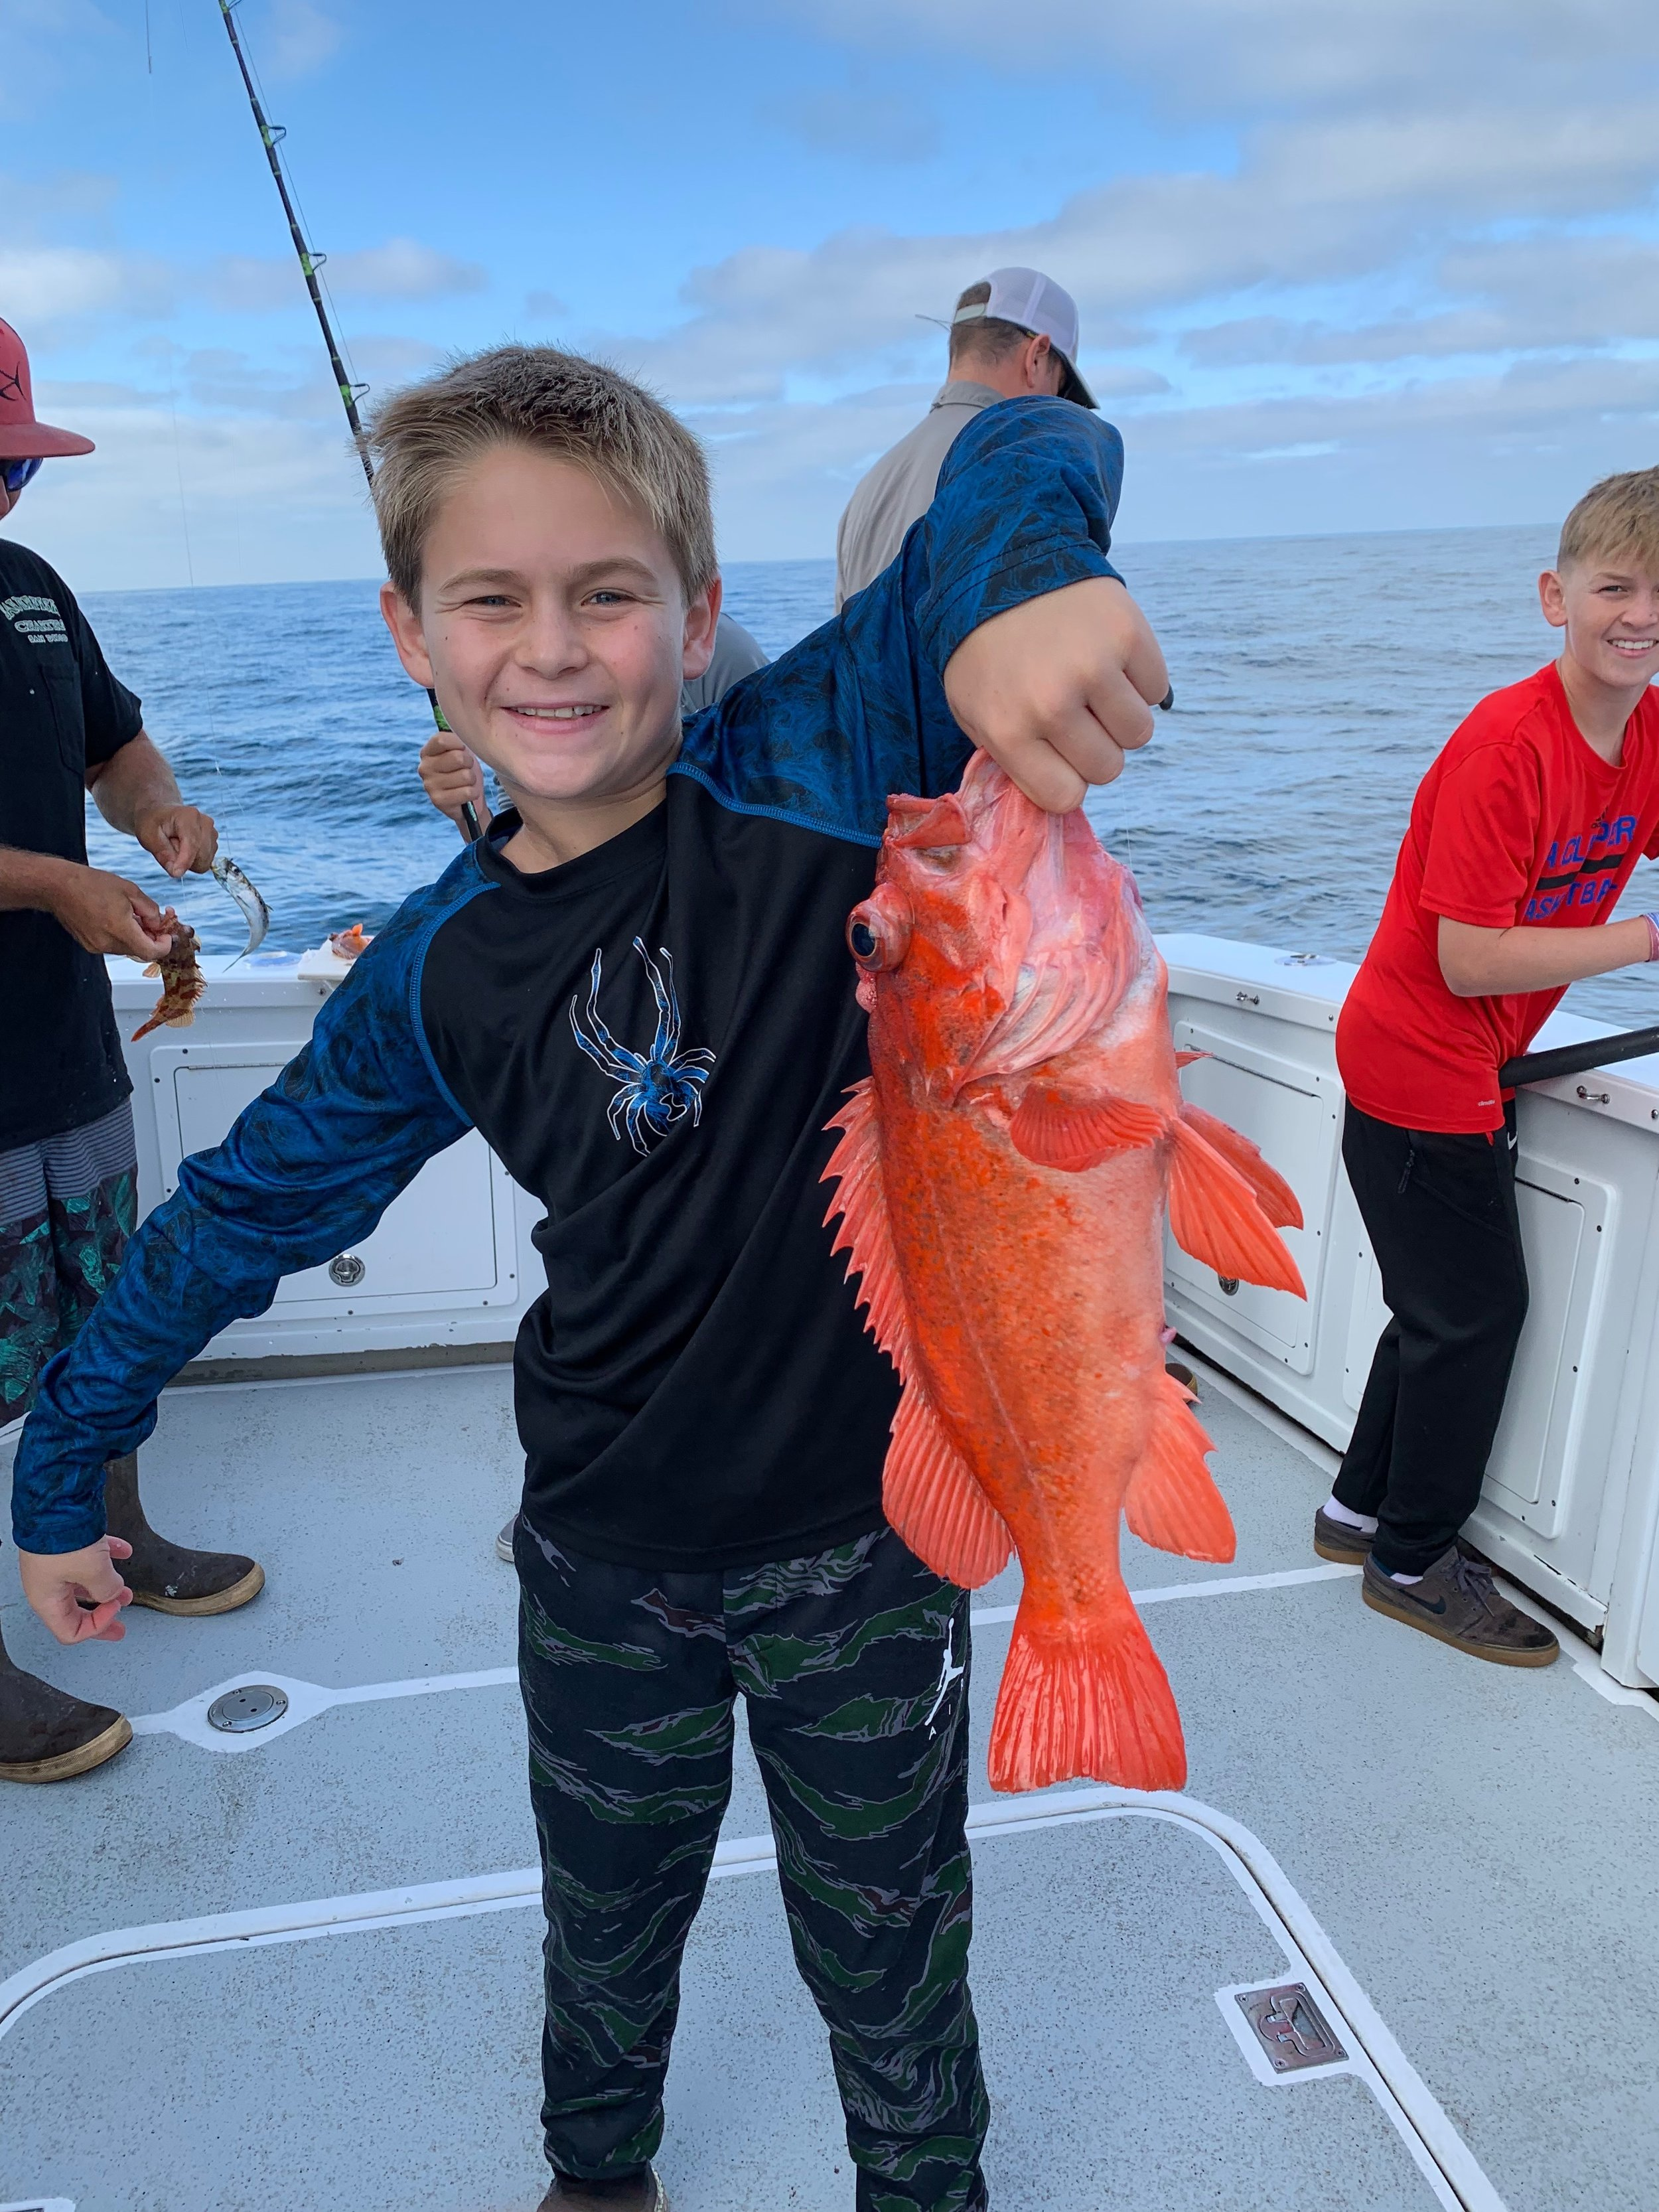 - August-8-2019The kids were halfing a blast picking away at Red Rockfish on their AM Half Day!